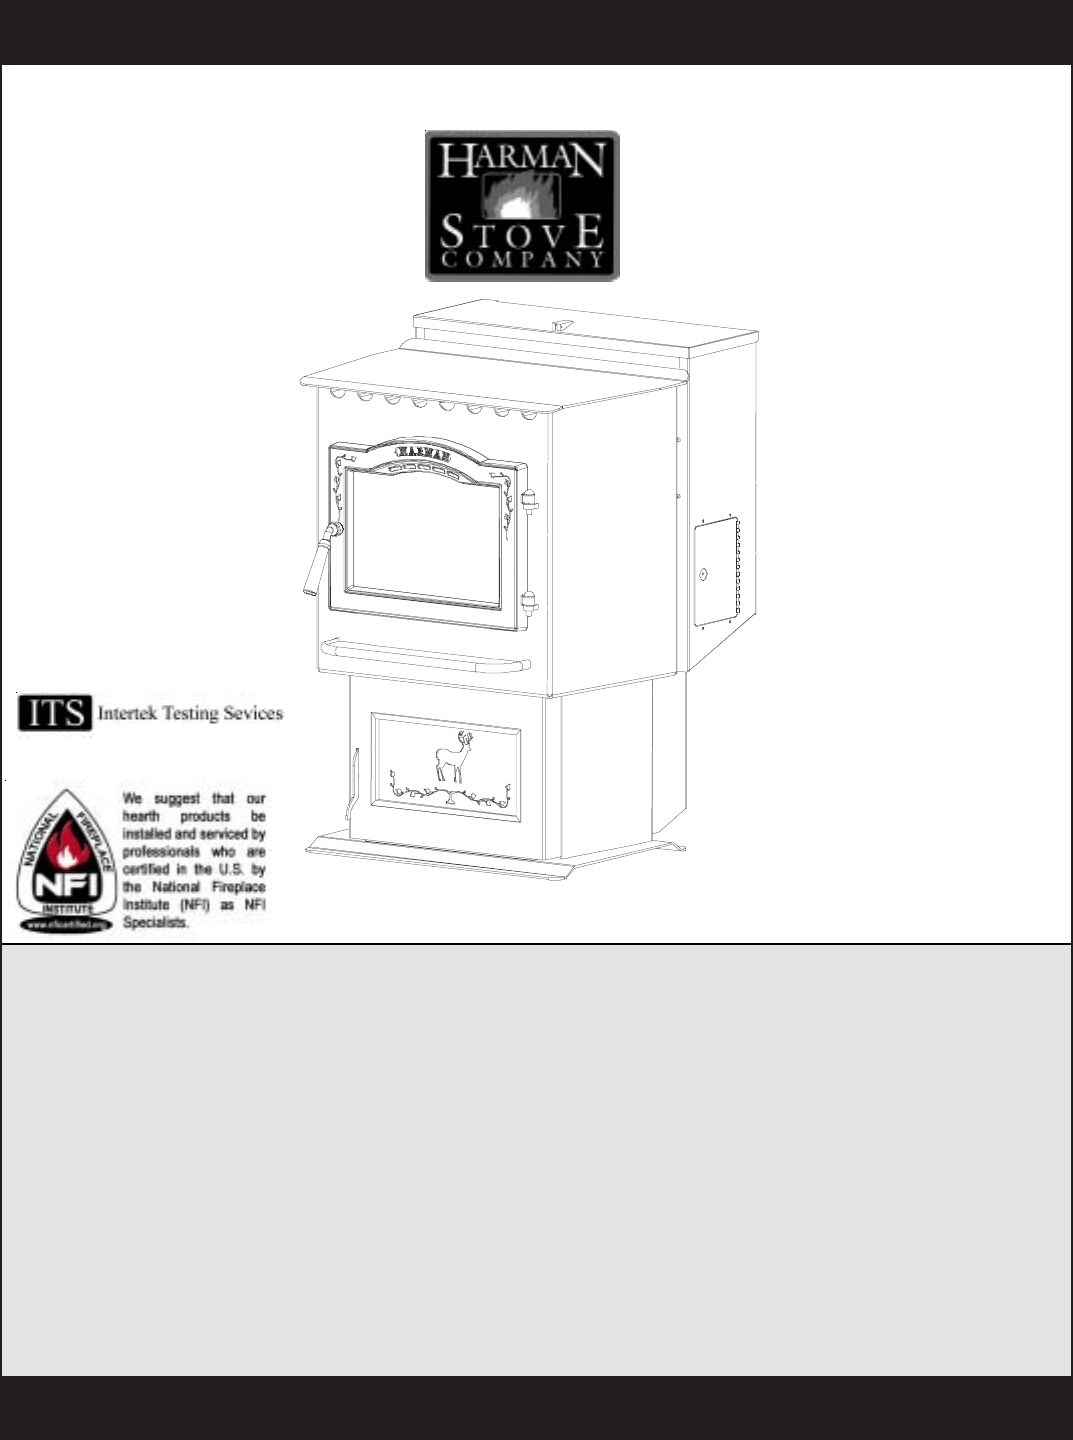 Harman Stove Company Stove P61A-2 User Guide